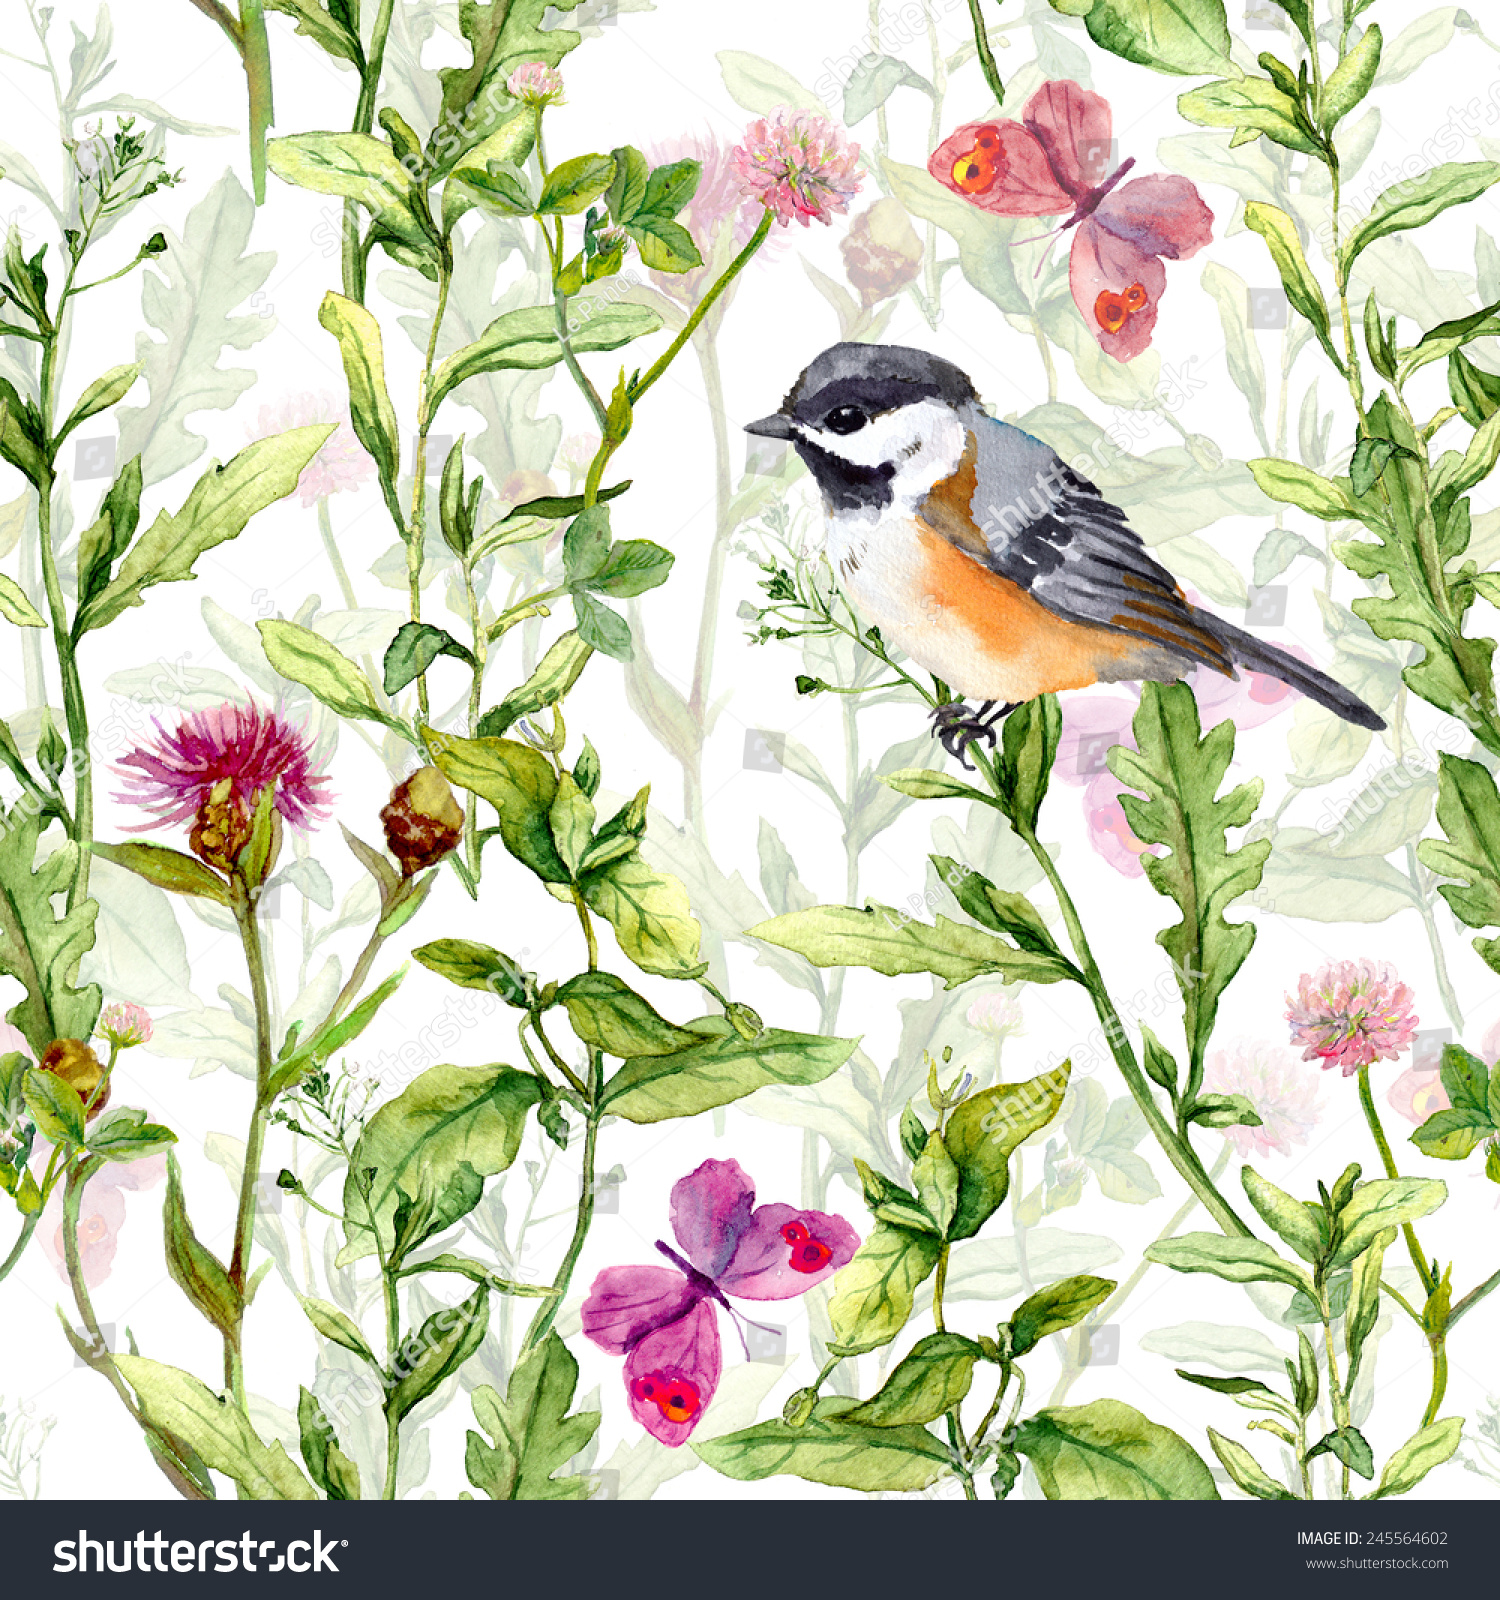 Small Bird In Spring Wild Herbs And Meadow Flowers With